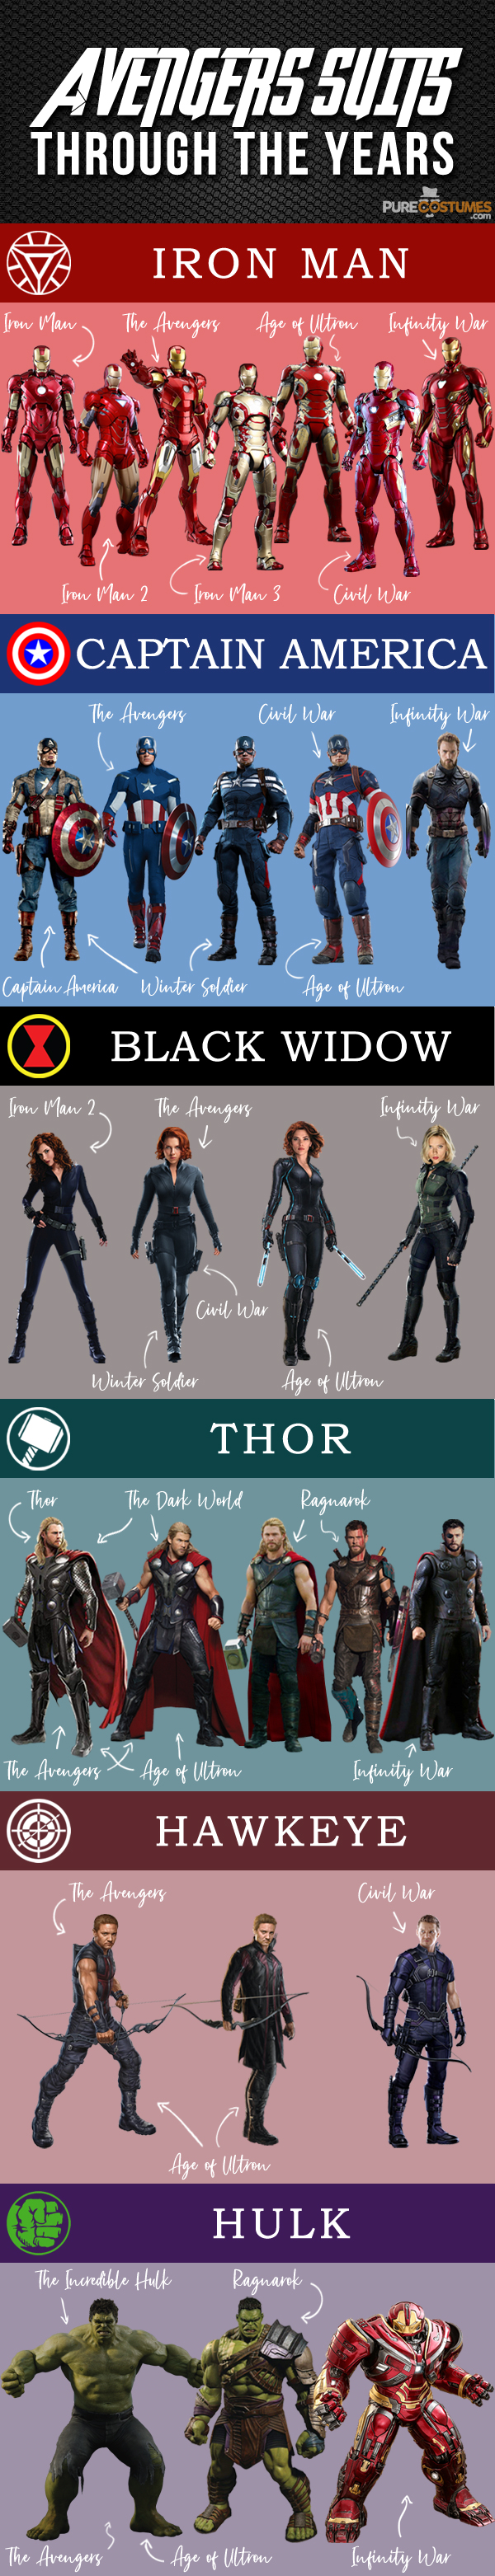 info-avengers-costumes infographic costumes Avengers Suits Changes